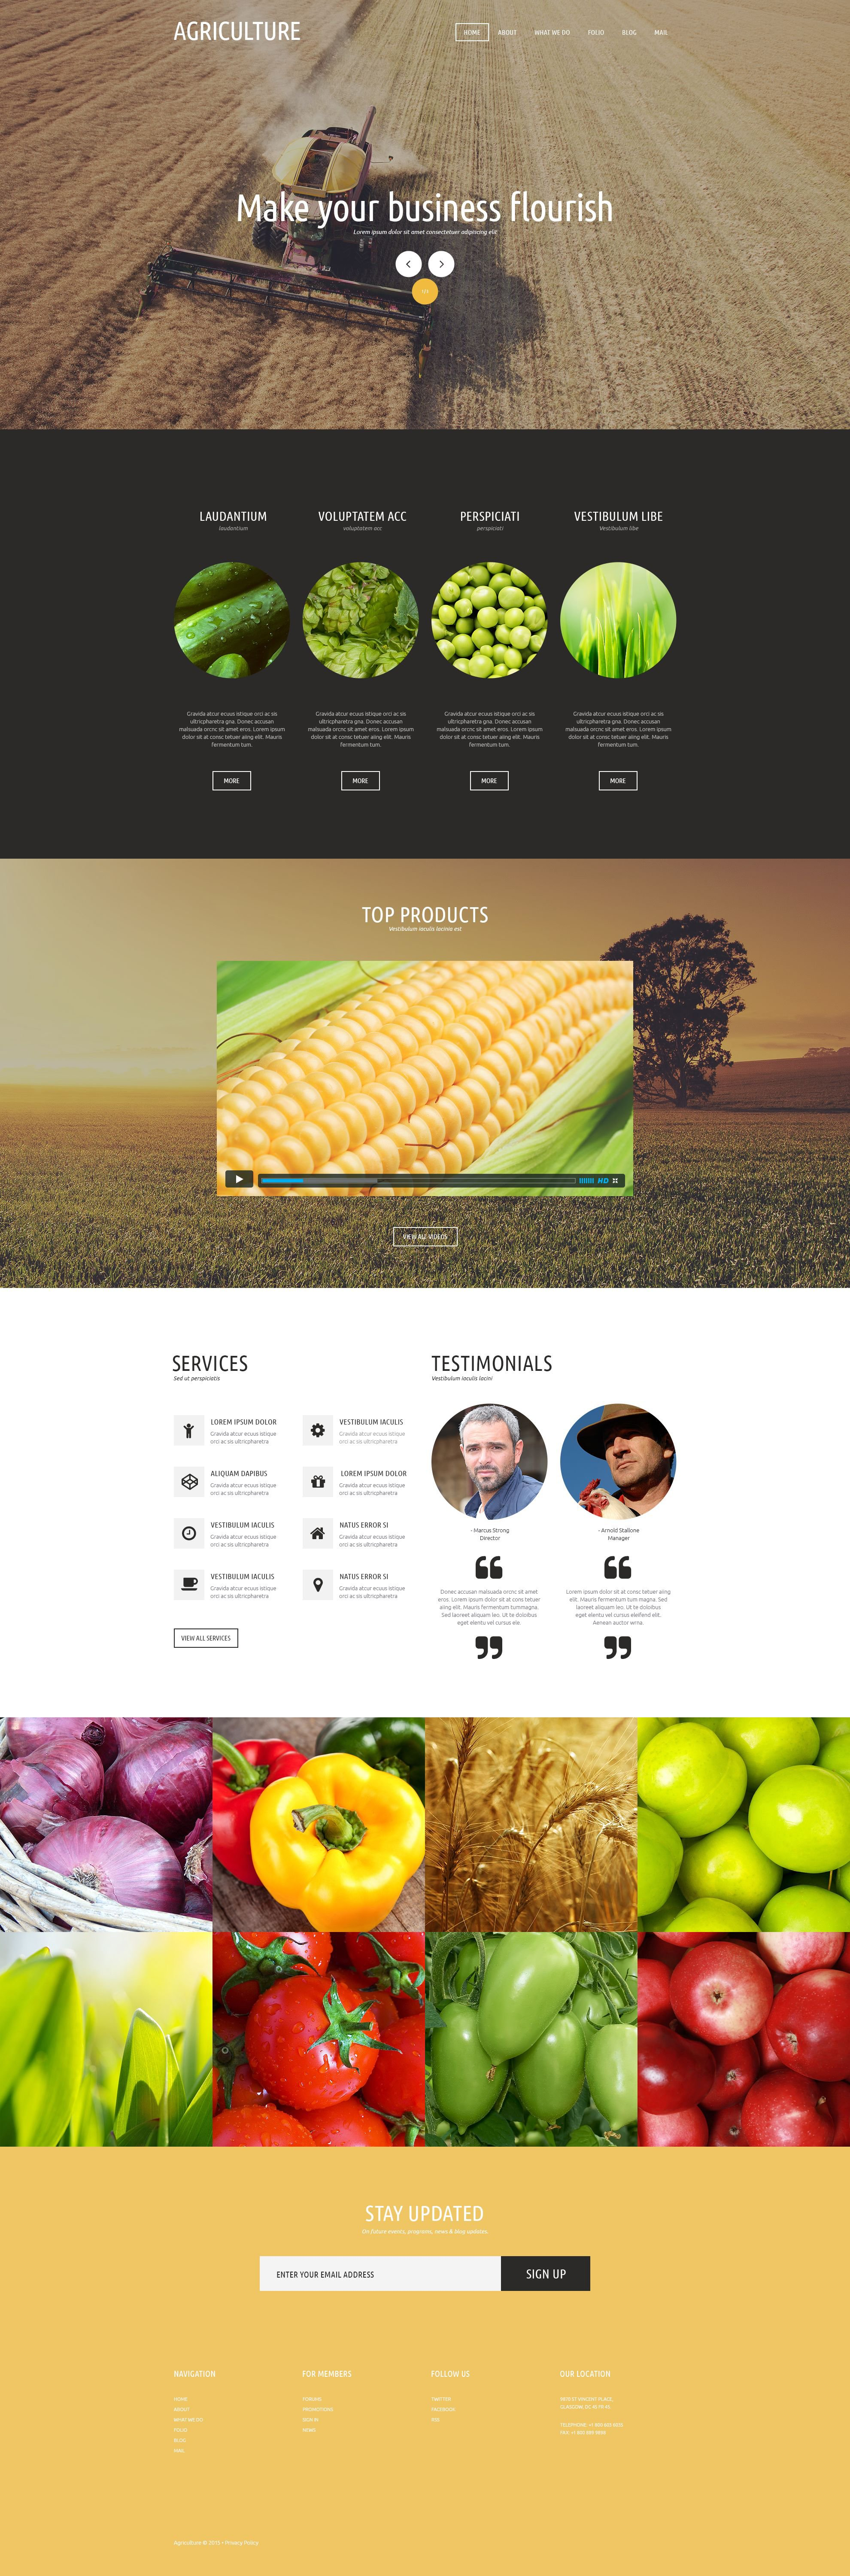 The Agriculture Company Joomla Design 53147, one of the best Joomla templates of its kind (agriculture, most popular), also known as agriculture company Joomla template, business Joomla template, grain-crops Joomla template, cereals Joomla template, field Joomla template, combine Joomla template, harvest Joomla template, farming Joomla template, plants Joomla template, services Joomla template, products solutions Joomla template, market Joomla template, delivery Joomla template, resource Joomla template, grassland Joomla template, equipment Joomla template, nitrates Joomla template, fertilizer Joomla template, clients Joomla template, partners Joomla template, innovations Joomla template, support Joomla template, information dealer Joomla template, stocks and related with agriculture company, business, grain-crops, cereals, field, combine, harvest, farming, plants, services, products solutions, market, delivery, resource, grassland, equipment, nitrates, fertilizer, clients, partners, innovations, support, information dealer, stocks, etc.